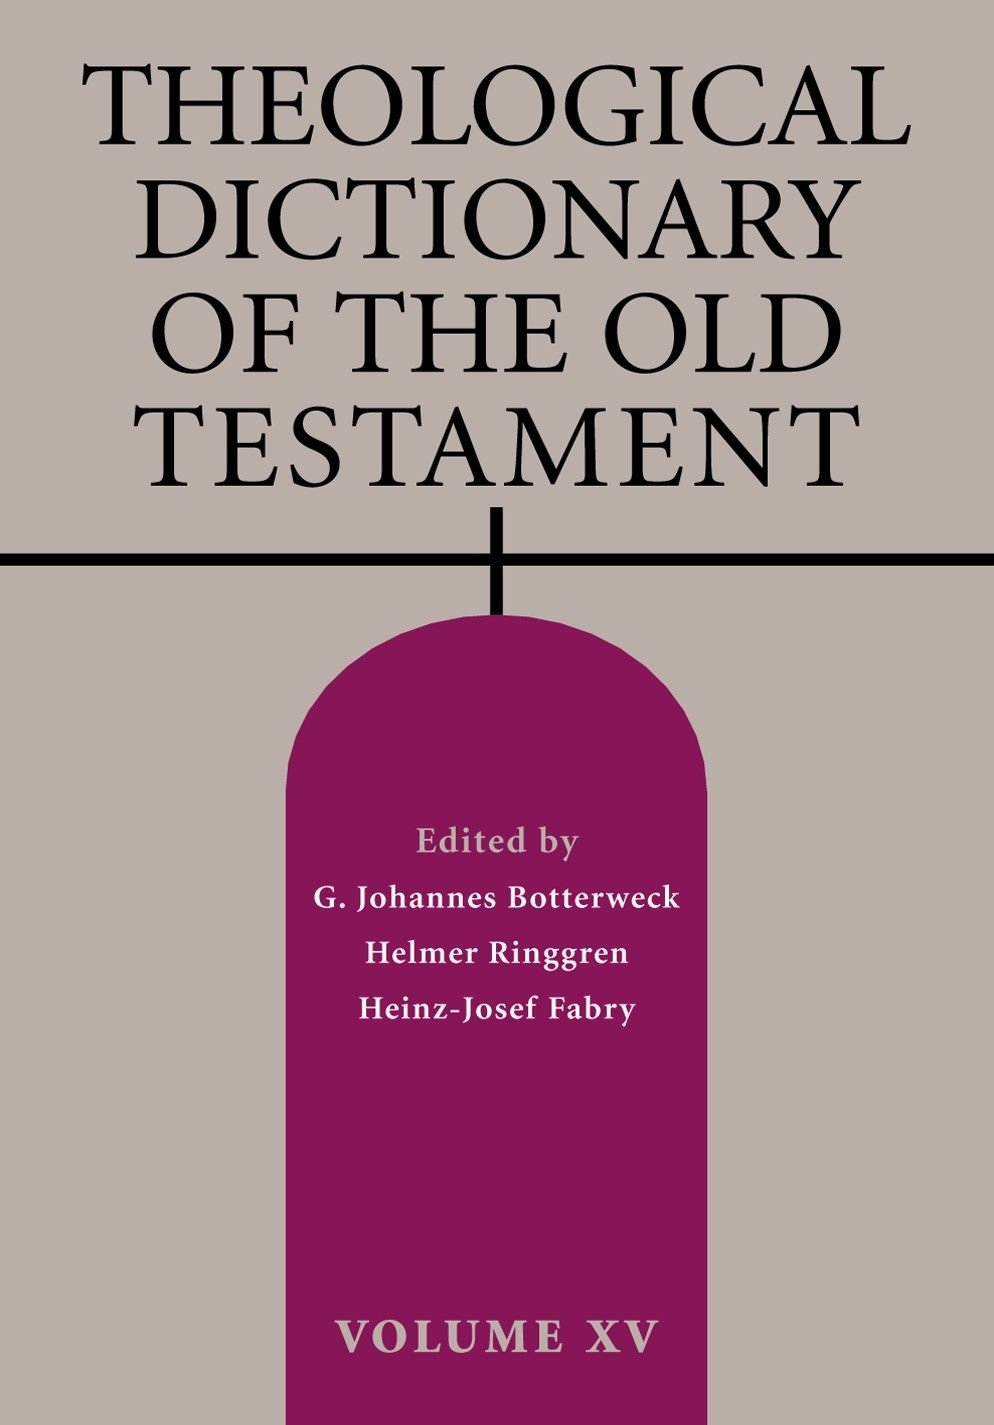 Theological Dictionary of the Old Testament, Volume XV PDF